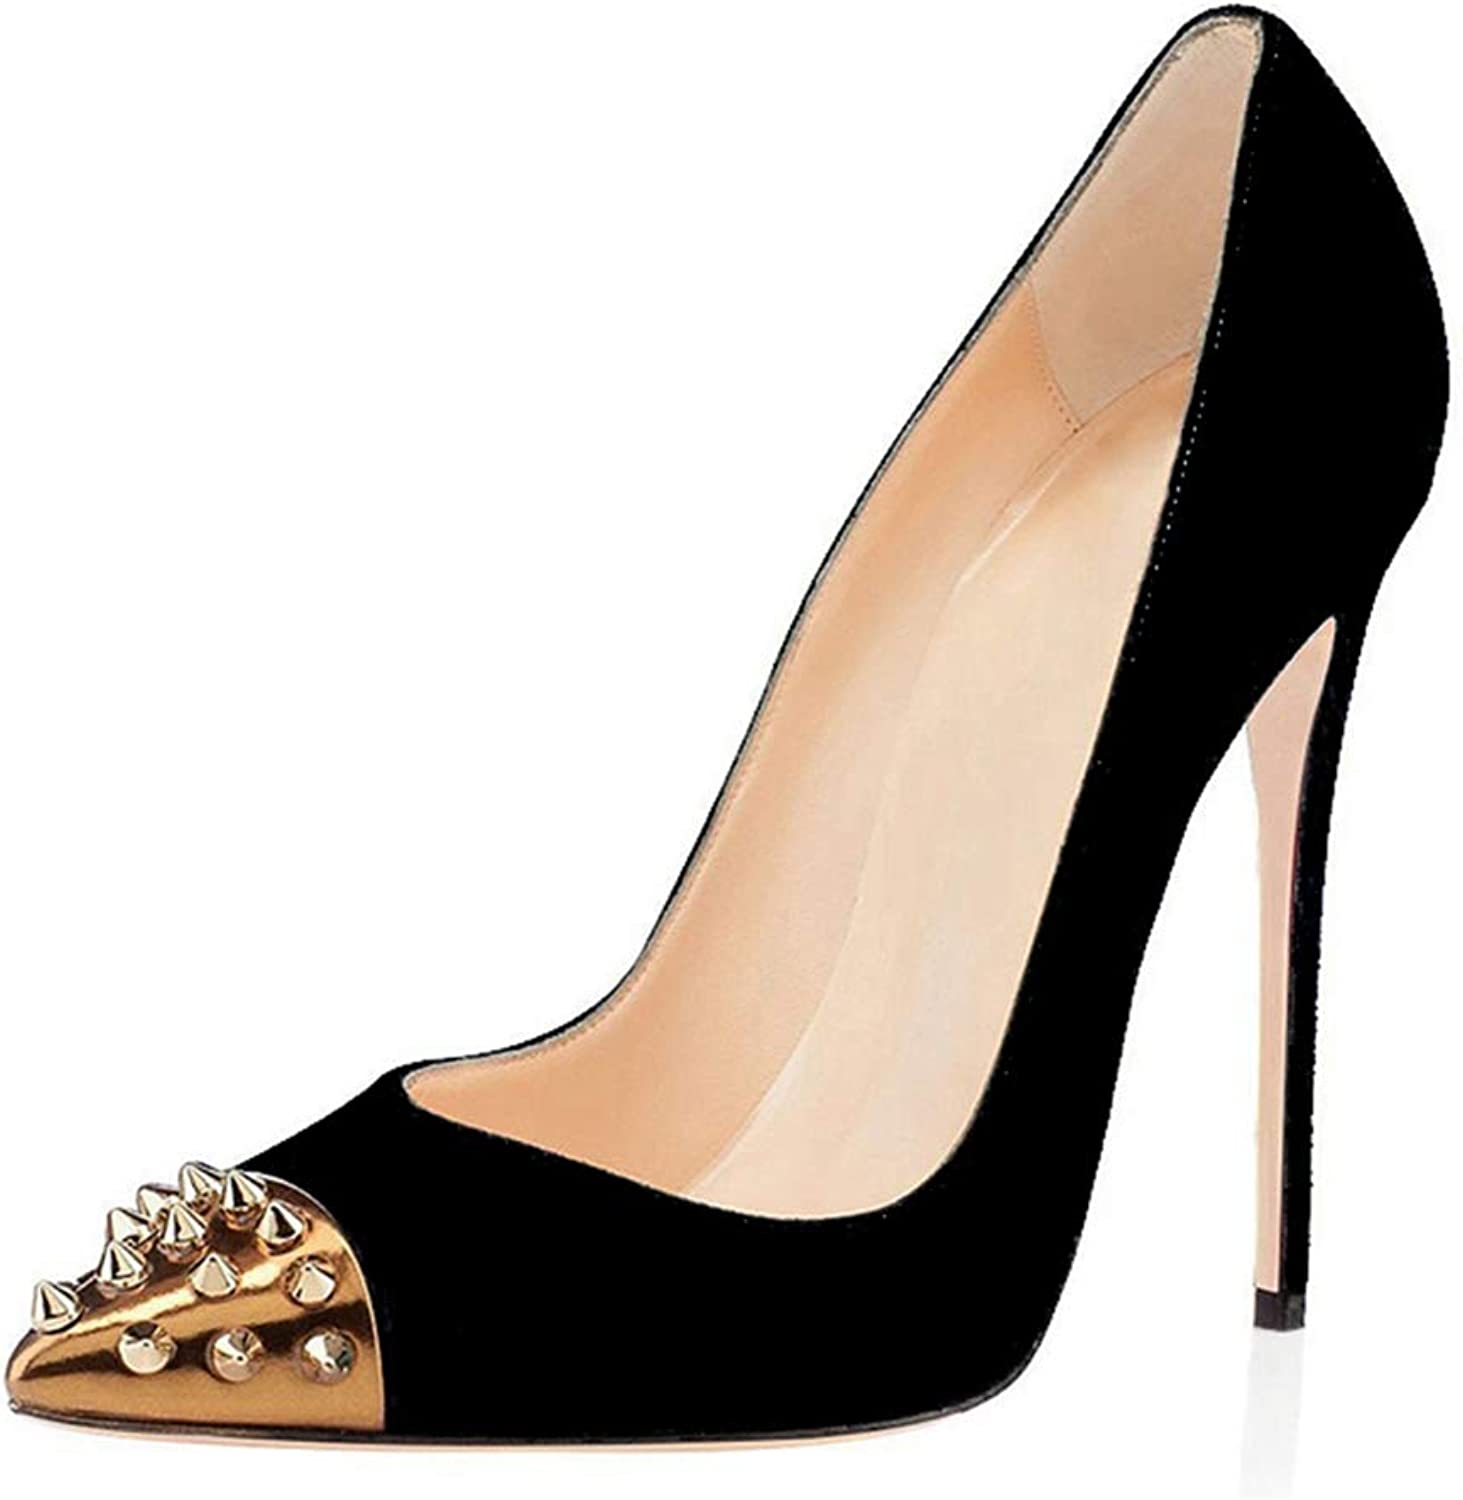 Women Rivet Pump gold Heeled Sandal Pointed Toe shoes Wedding Party Ladies Sandals